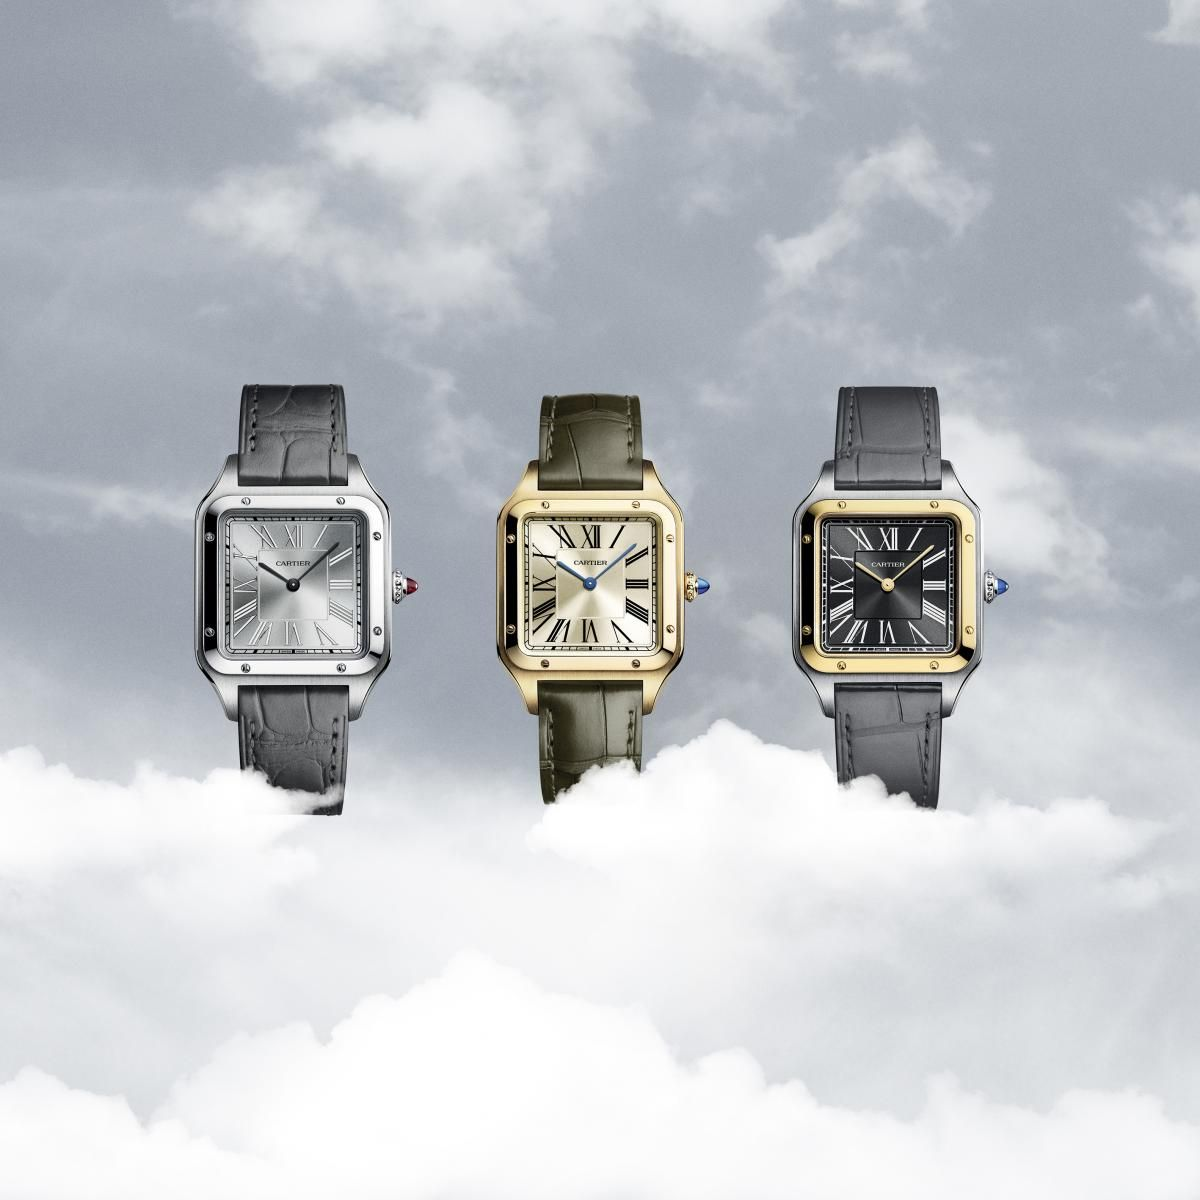 New Cartier Watch Models for 2020 Announced Santos-Dumont Watches